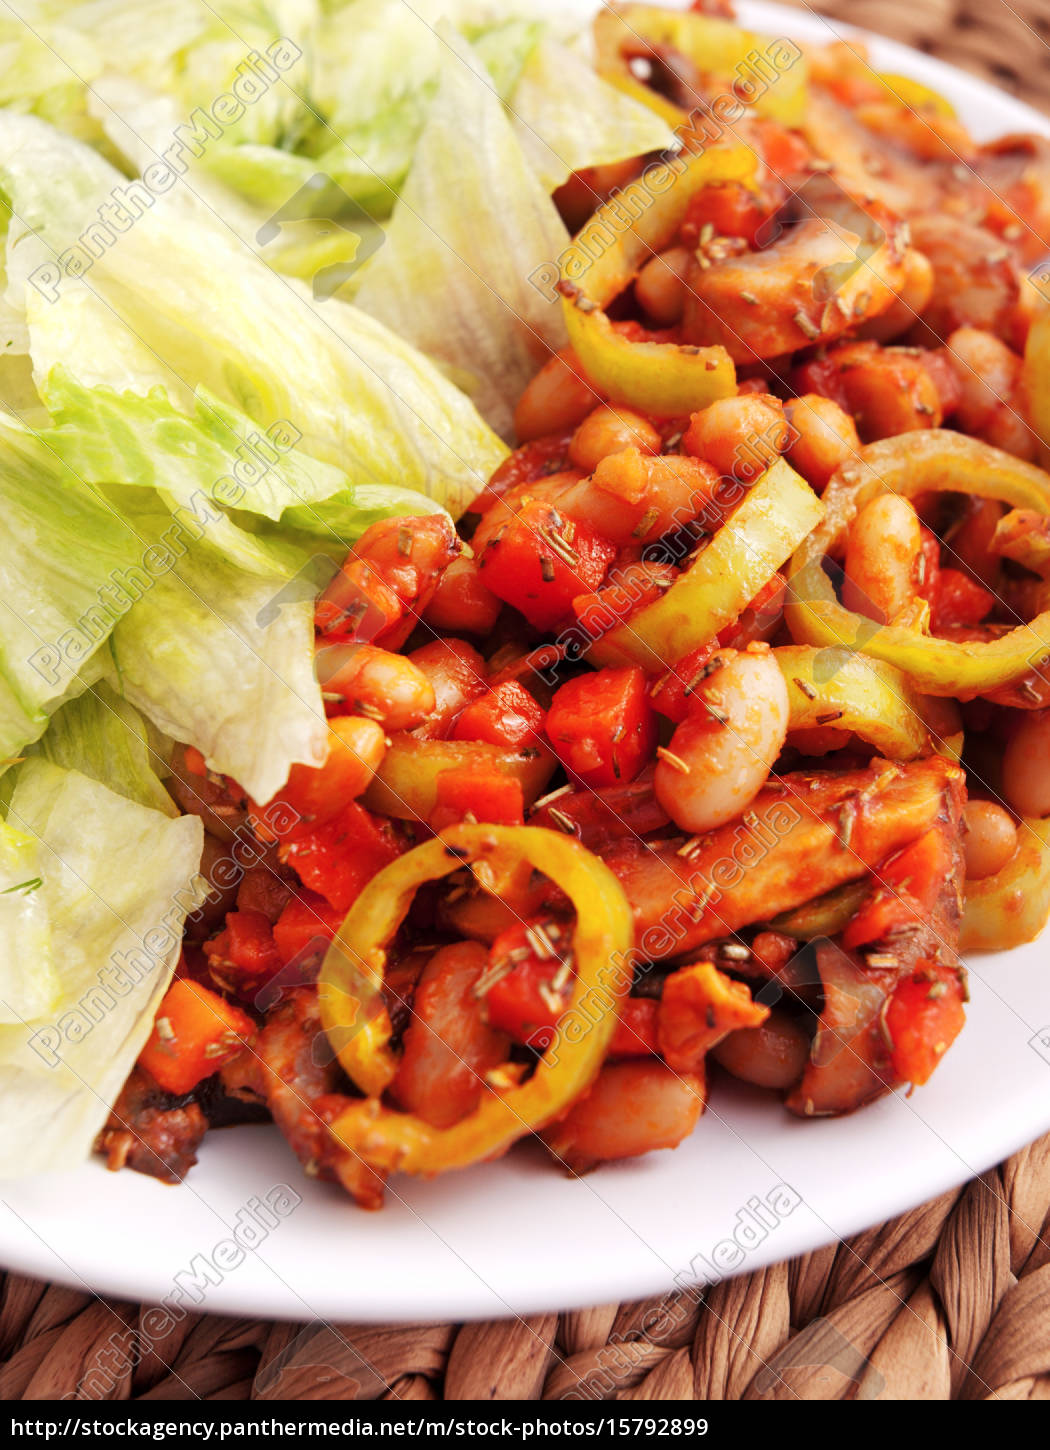 fried, beans, with, carrots, and, mushrooms, fried - 15792899